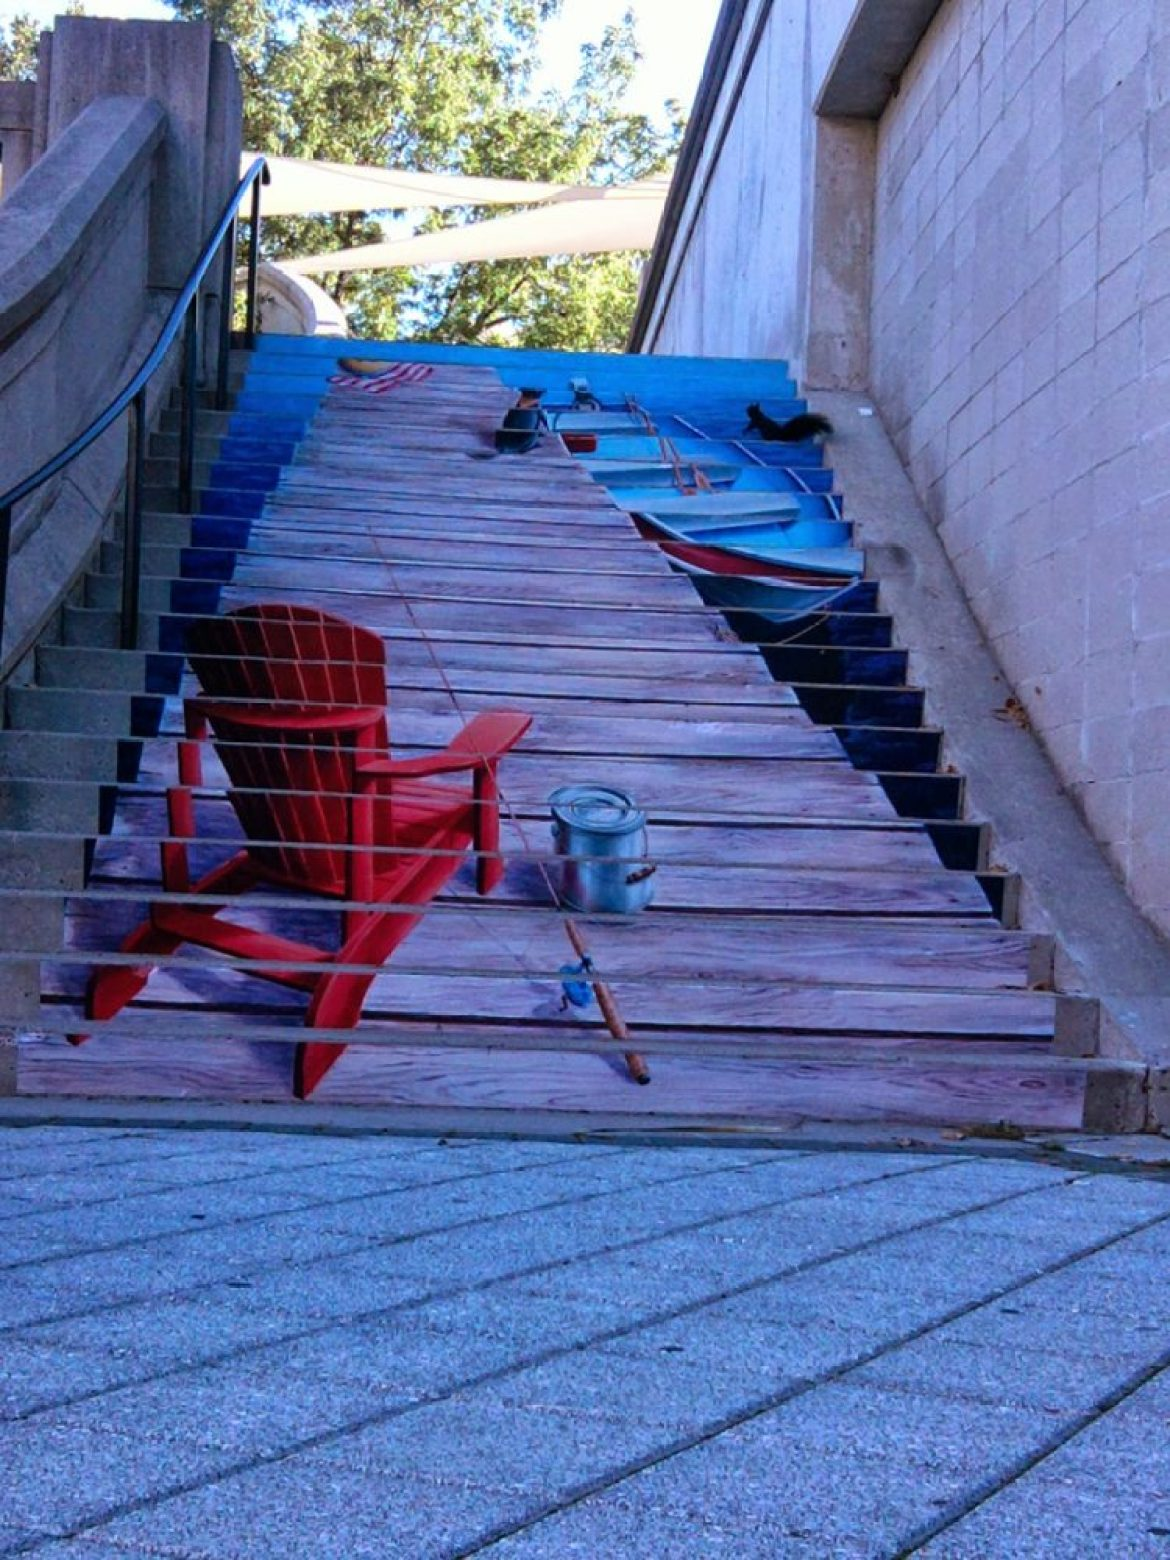 amazing stairs street art around the world, Ottawa - Canada-3